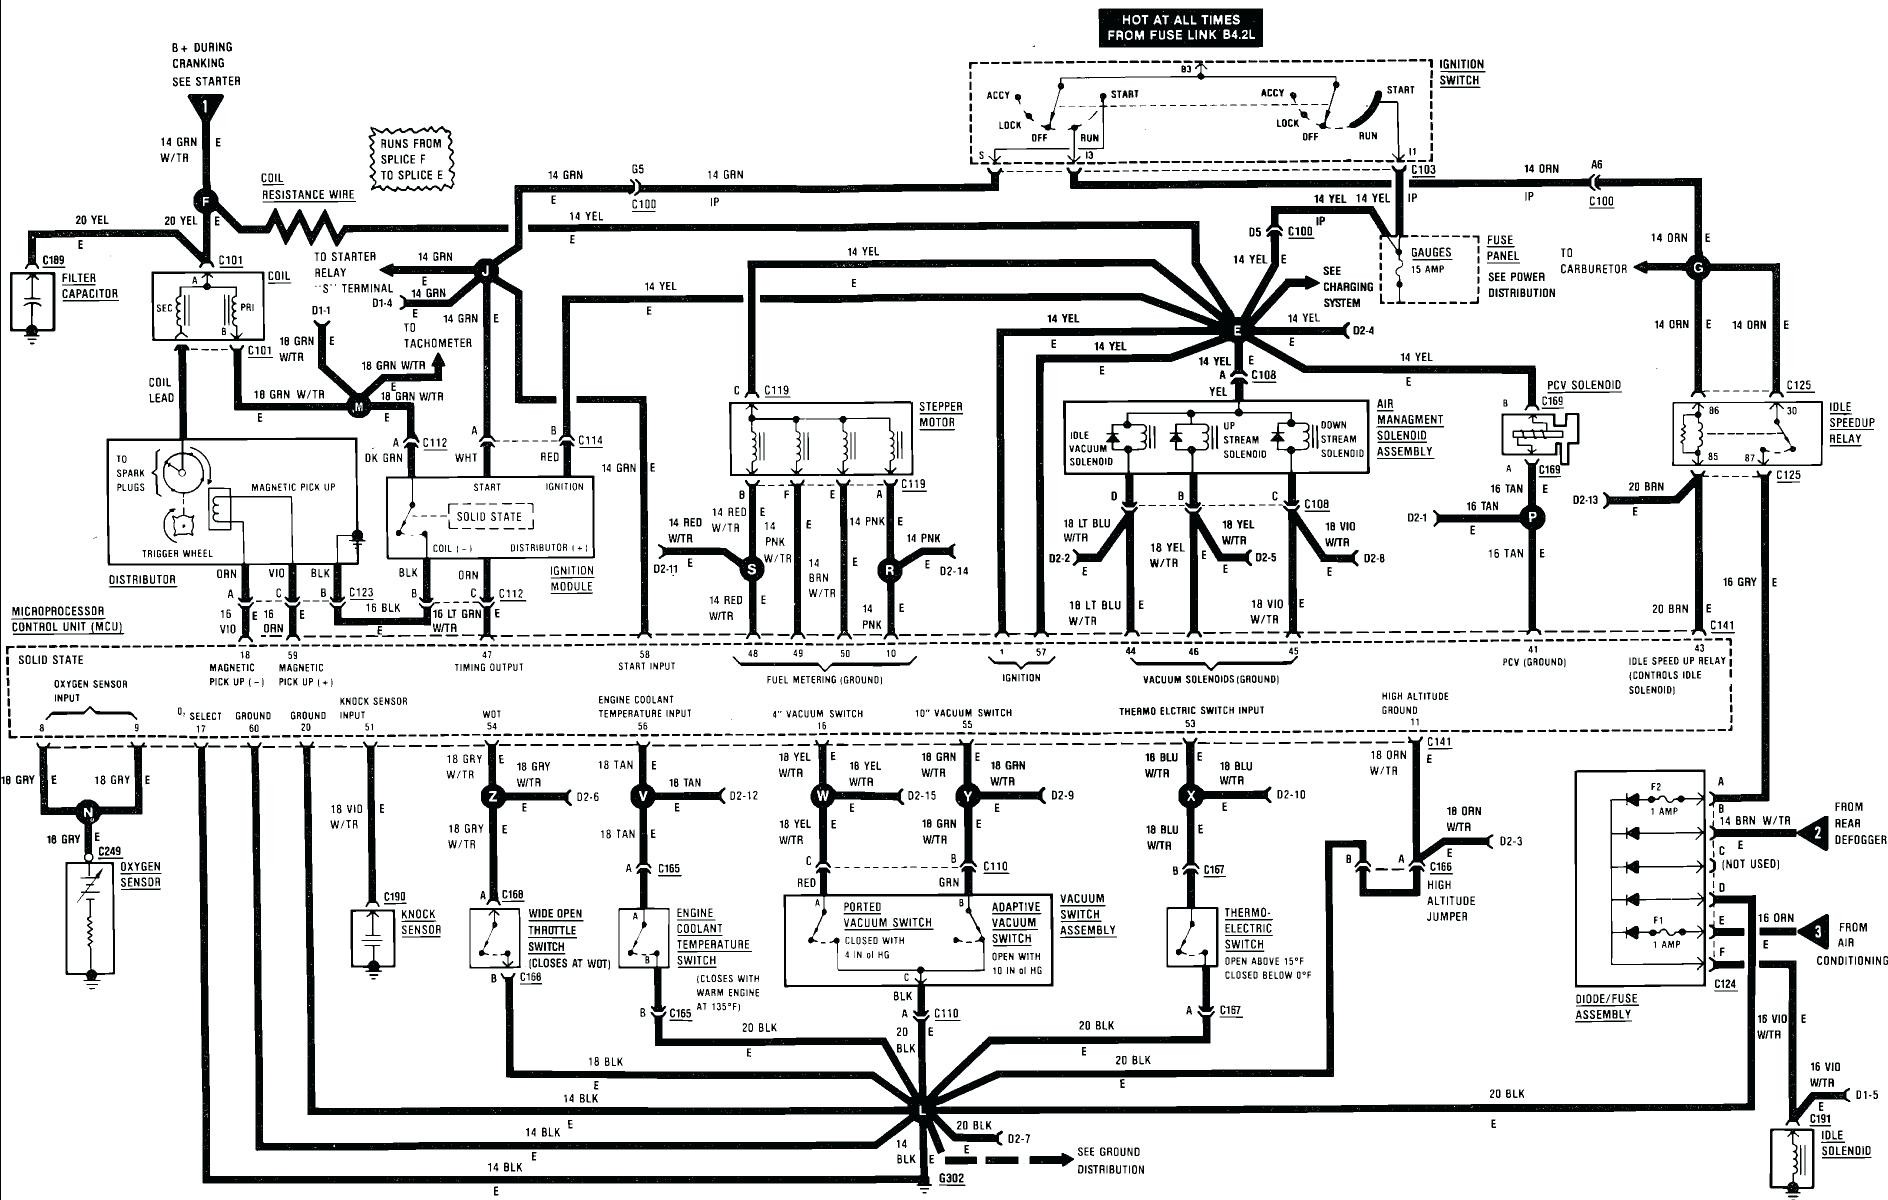 2004 jeep wiring diagram wiring diagram schematic 2004 jeep wrangler engine diagram my wiring diagram 2004 jeep starter wiring diagram 2004 jeep wiring diagram source 2004 jeep grand cherokee cheapraybanclubmaster Image collections